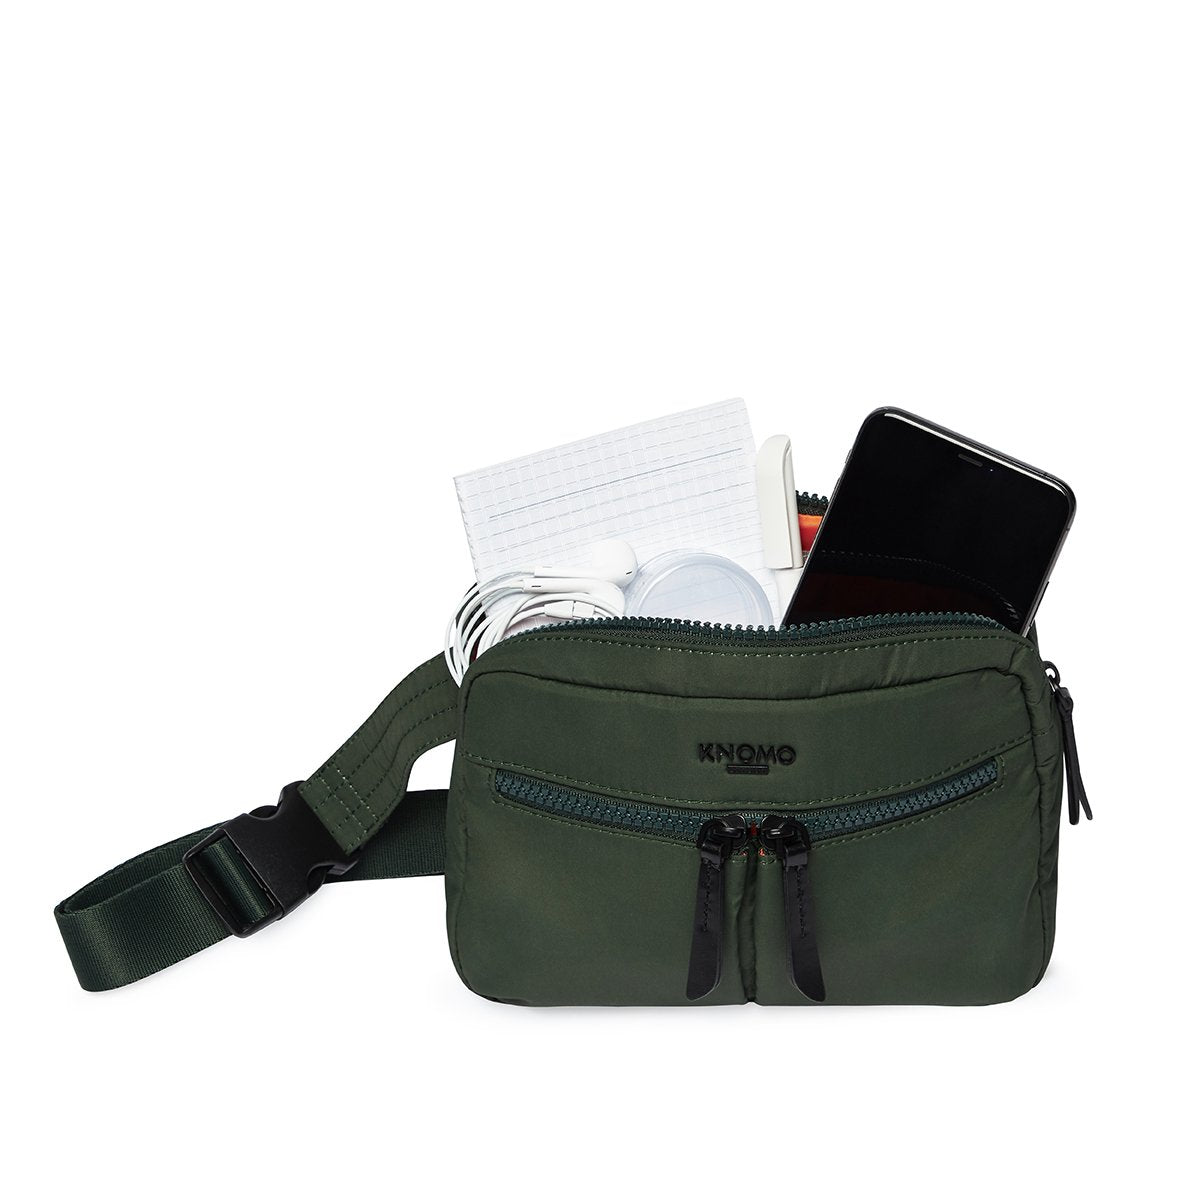 "KNOMO Palermo Ultra Lightweight X-Body Internal With Items 10.5"" -  Bottle Green 